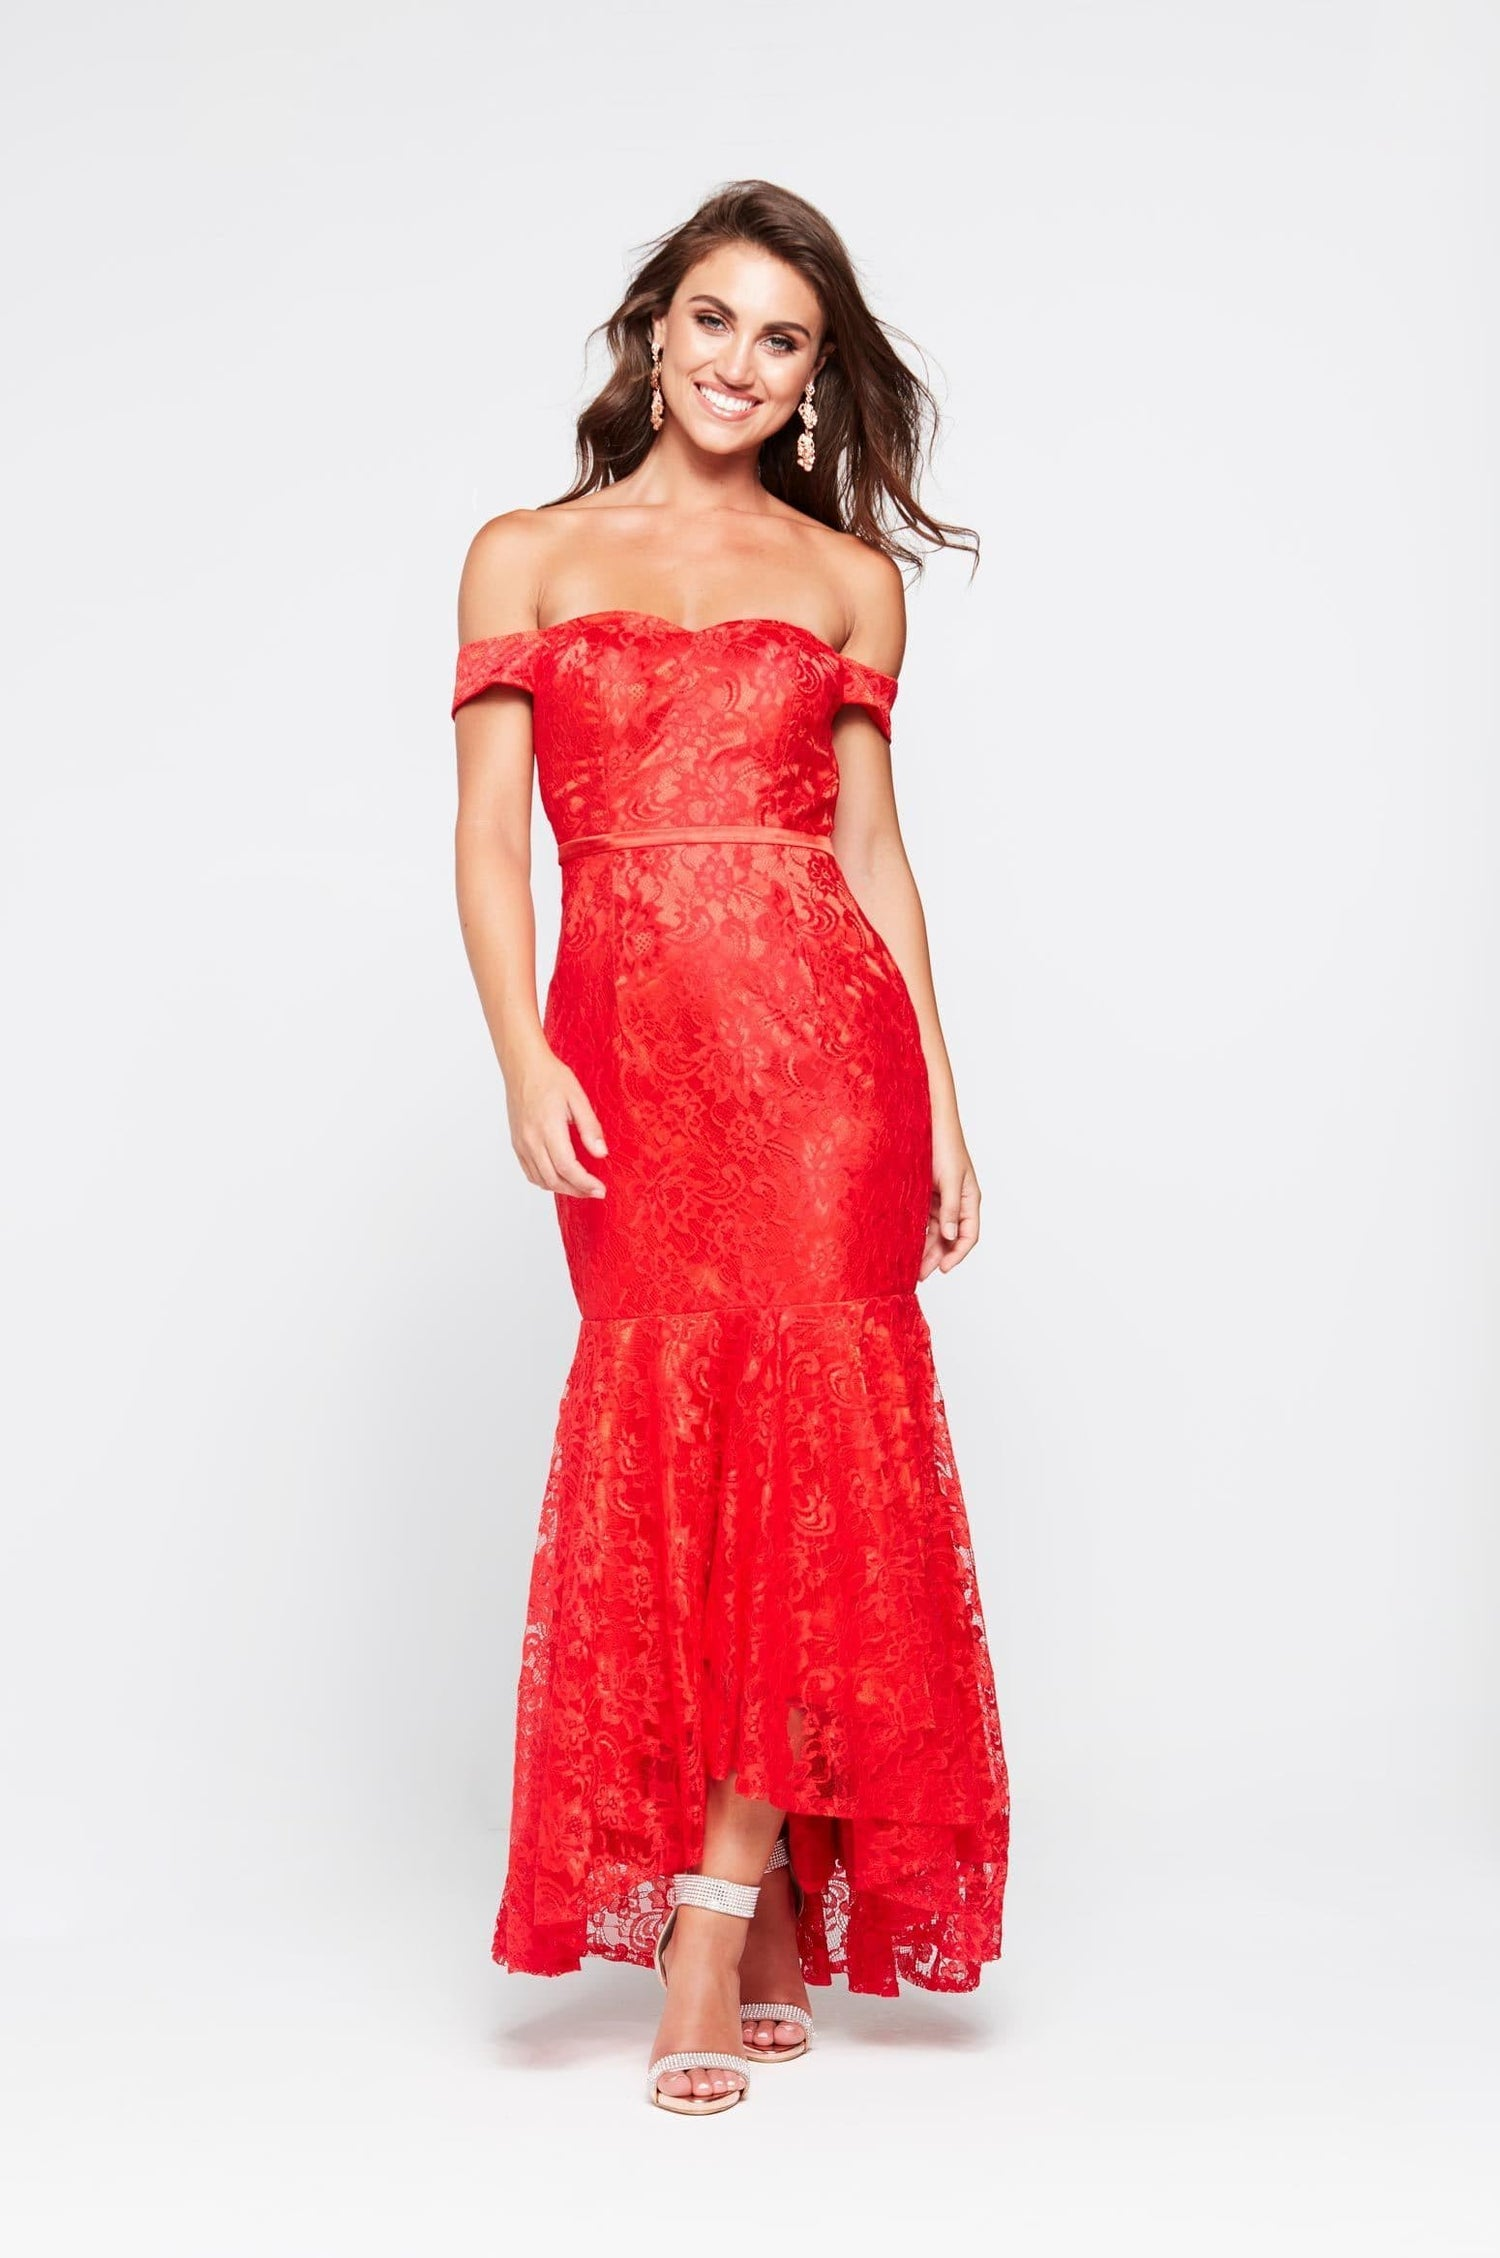 d6890f941f6e4 A&N Caroline - Red Off Shoulder Mermaid Dress with Lace Detail – A&N ...